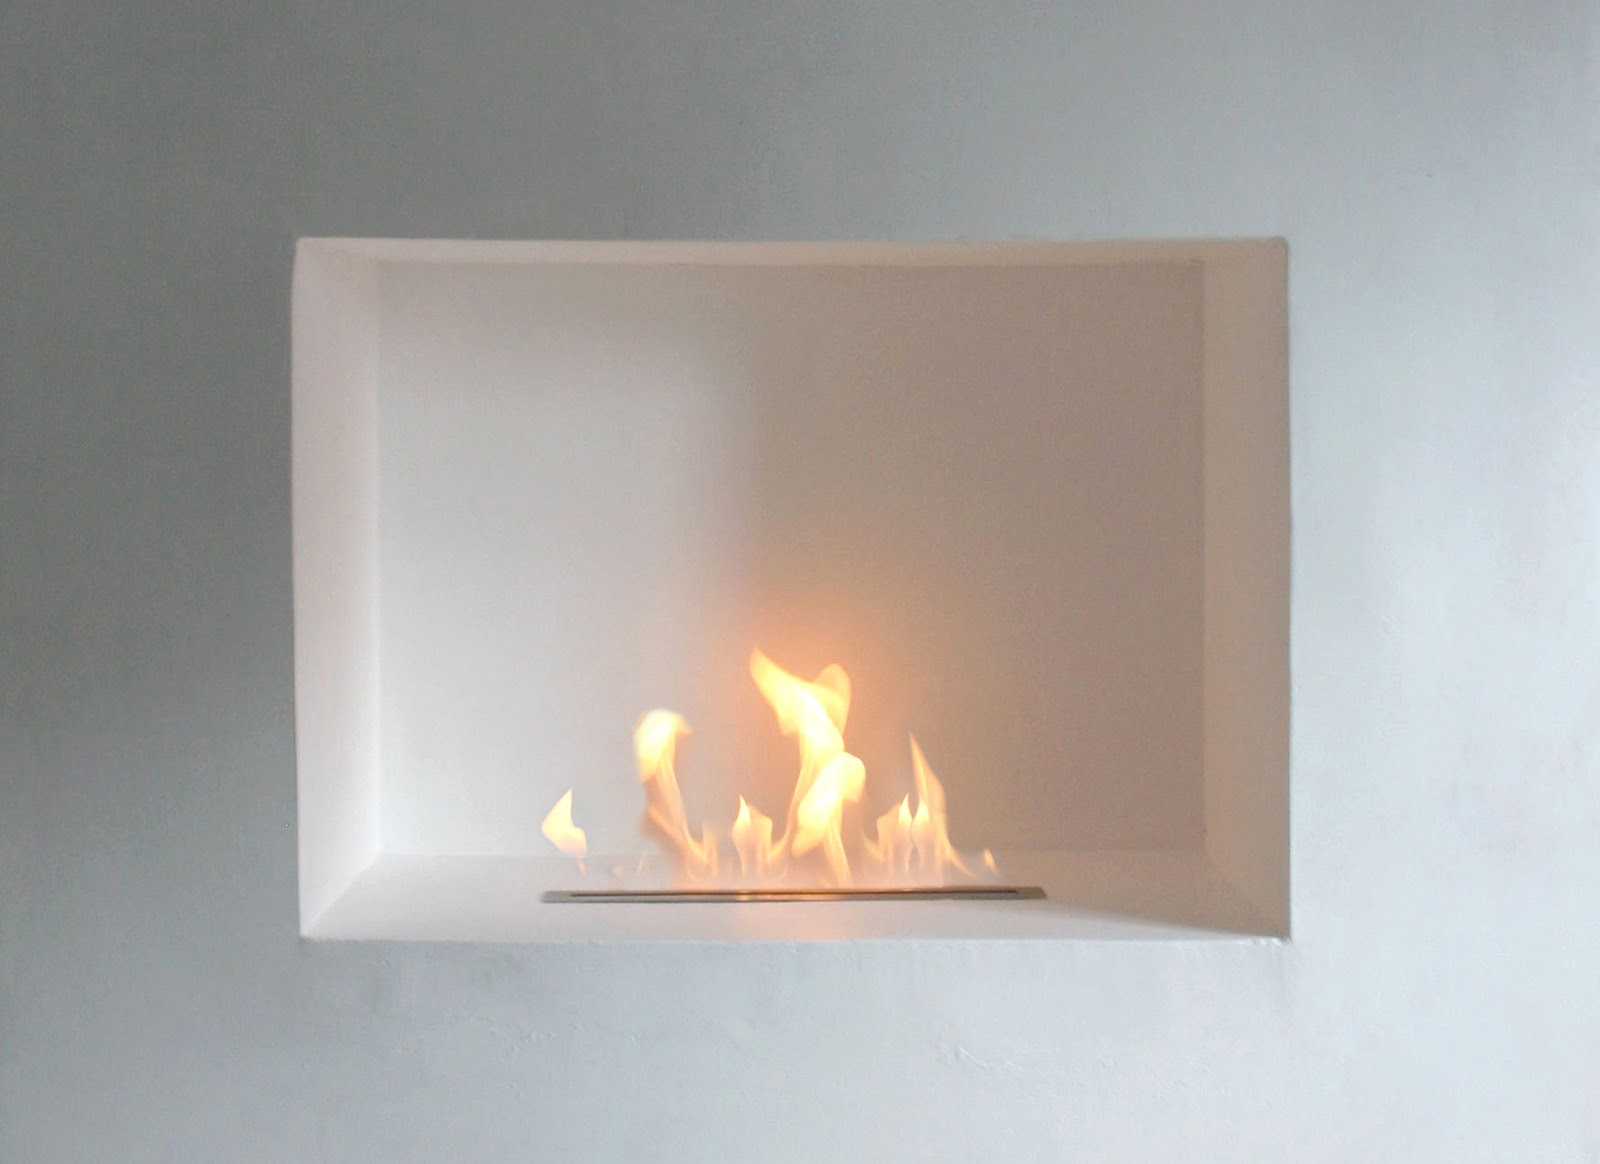 Gel fireplaces bio fires official company blog diy for Alcohol gel fireplace